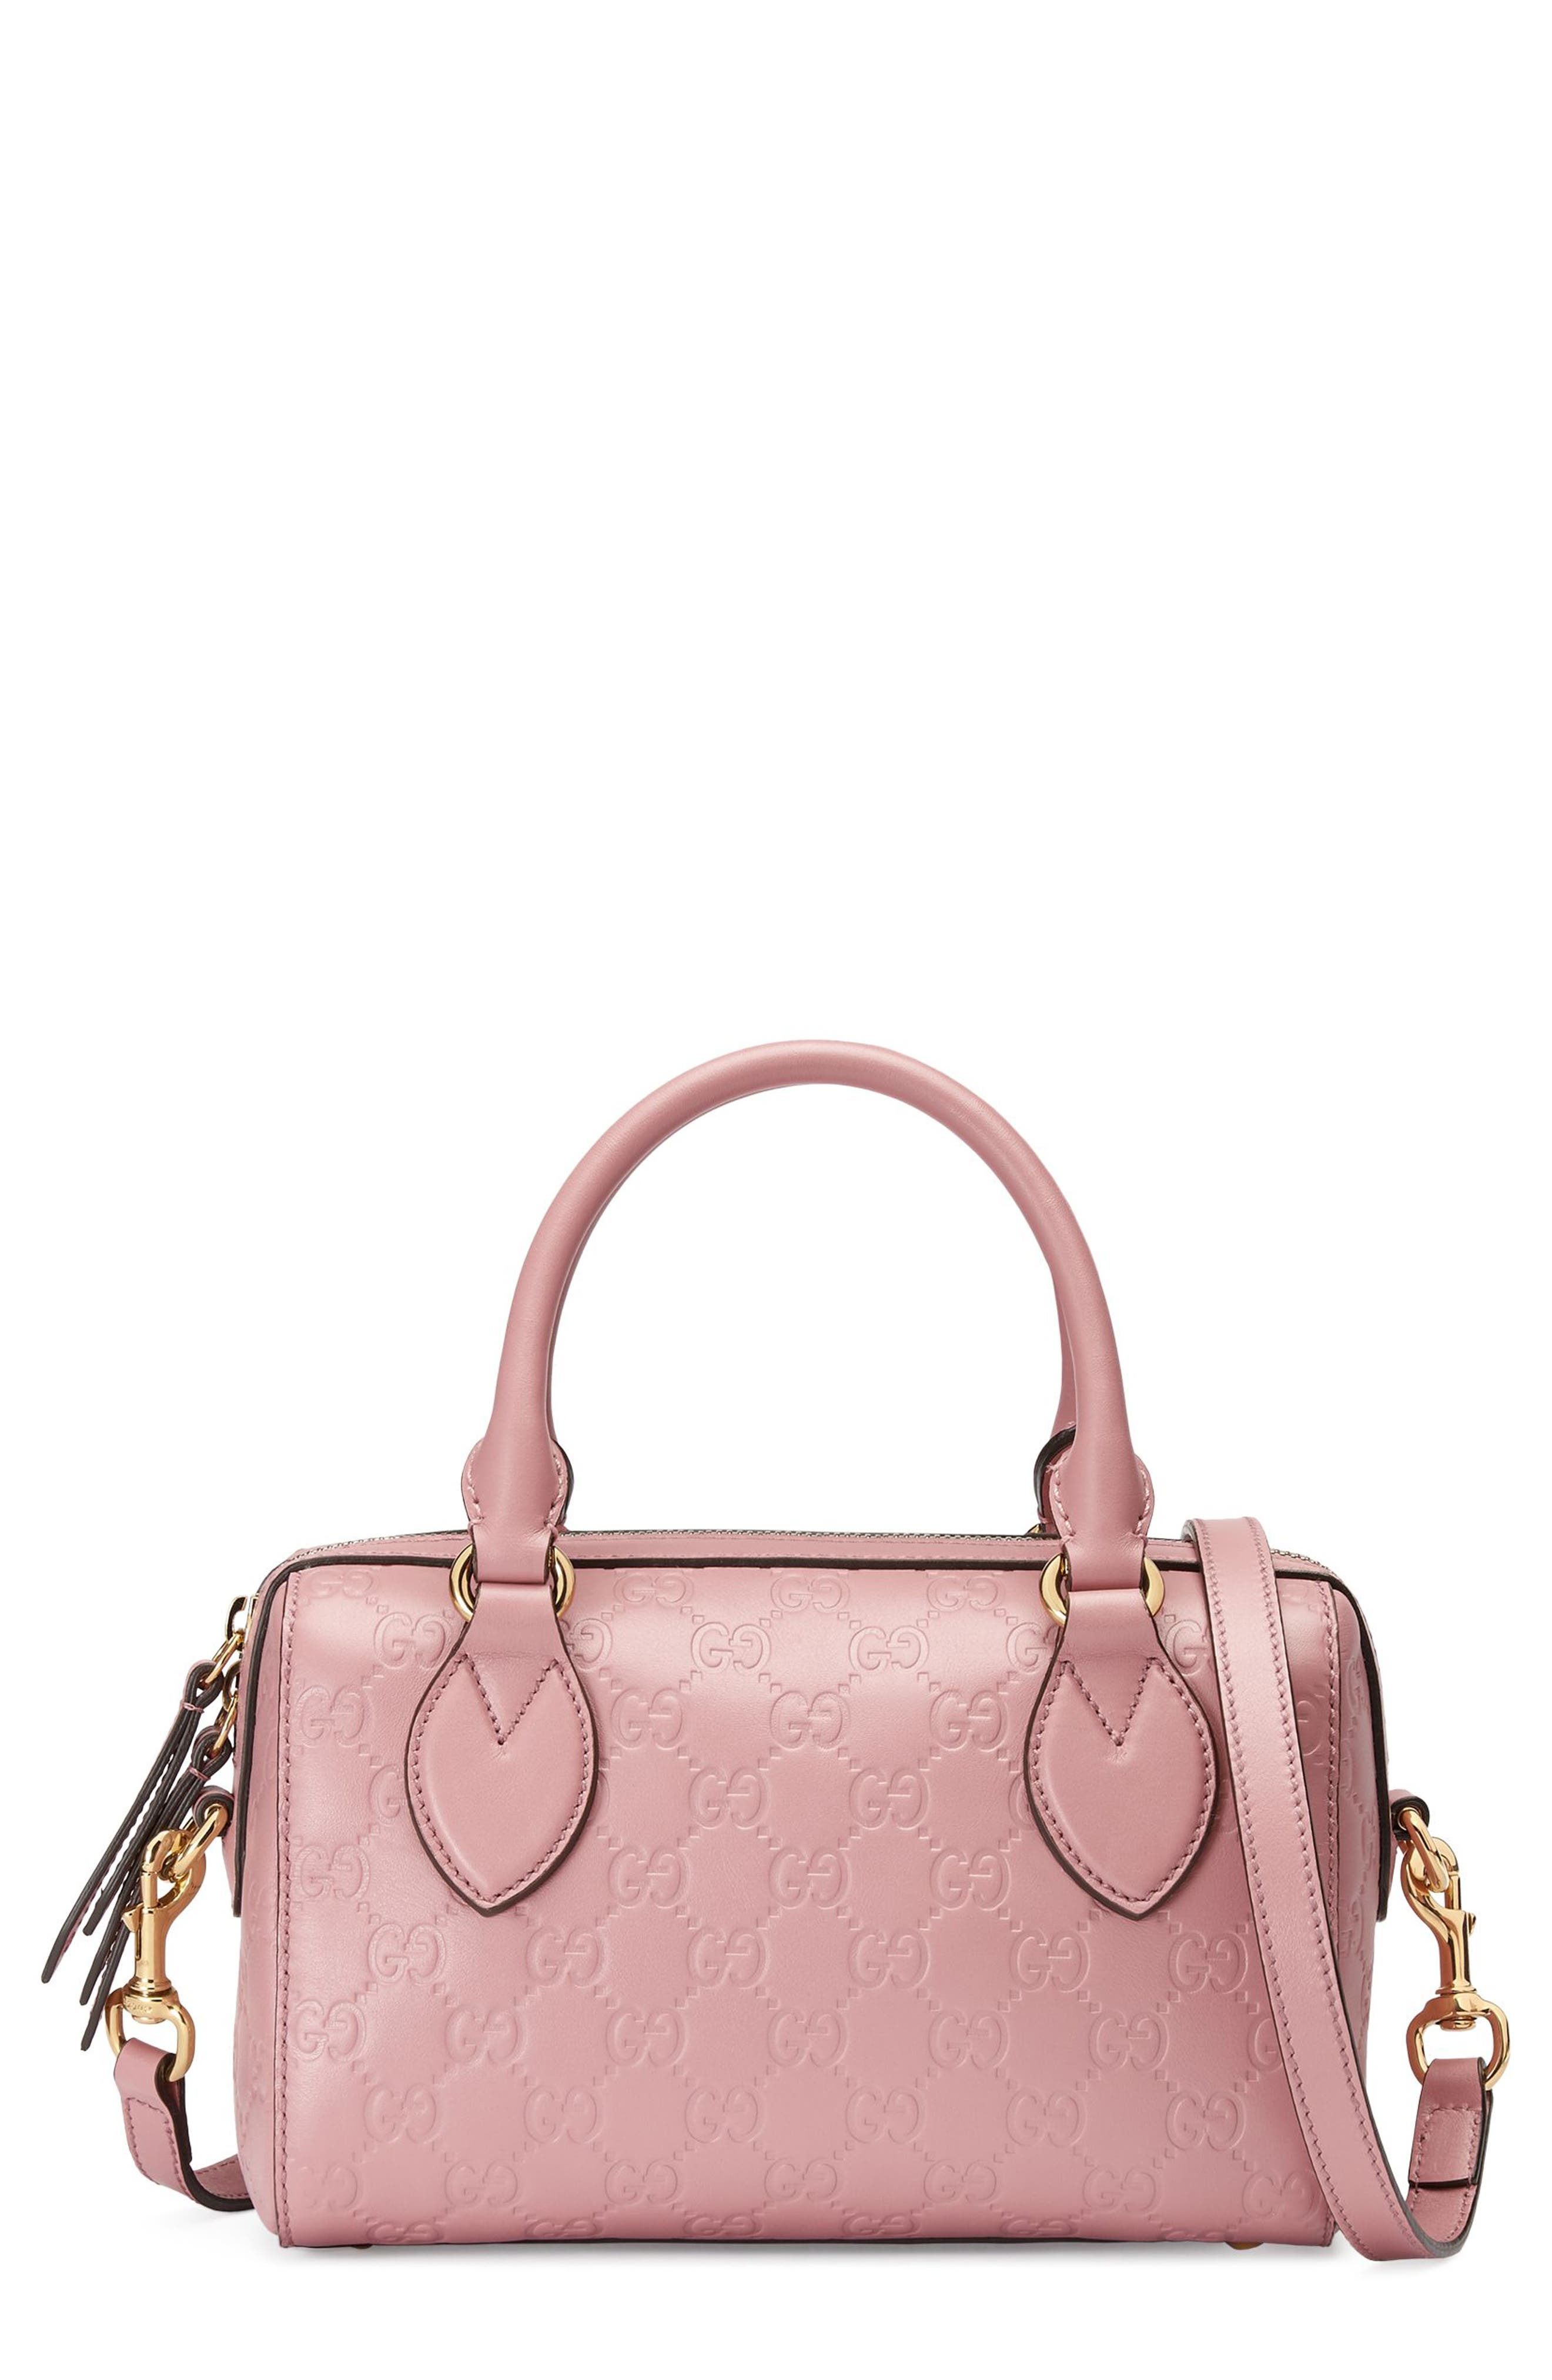 Alternate Image 1 Selected - Gucci Small Top Handle Signature Leather Satchel